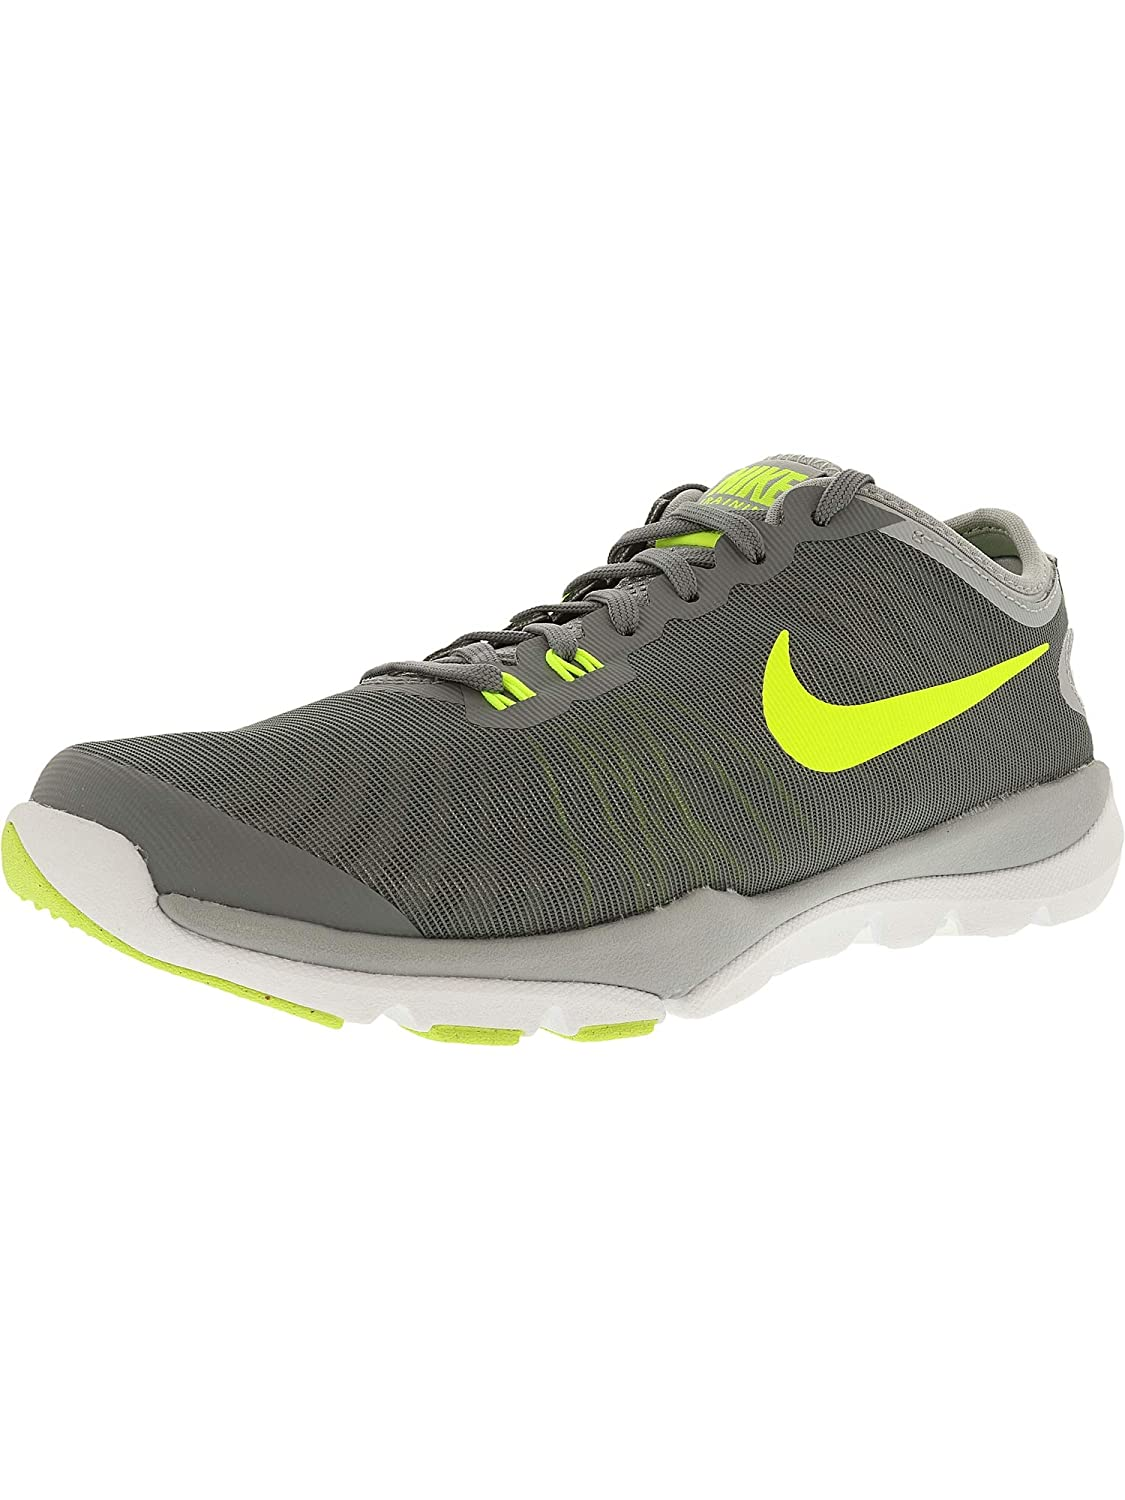 724f258159a7b Amazon.com  Nike Women s Flex Supreme Tr 4 Pr Training Shoe  Nike  Shoes